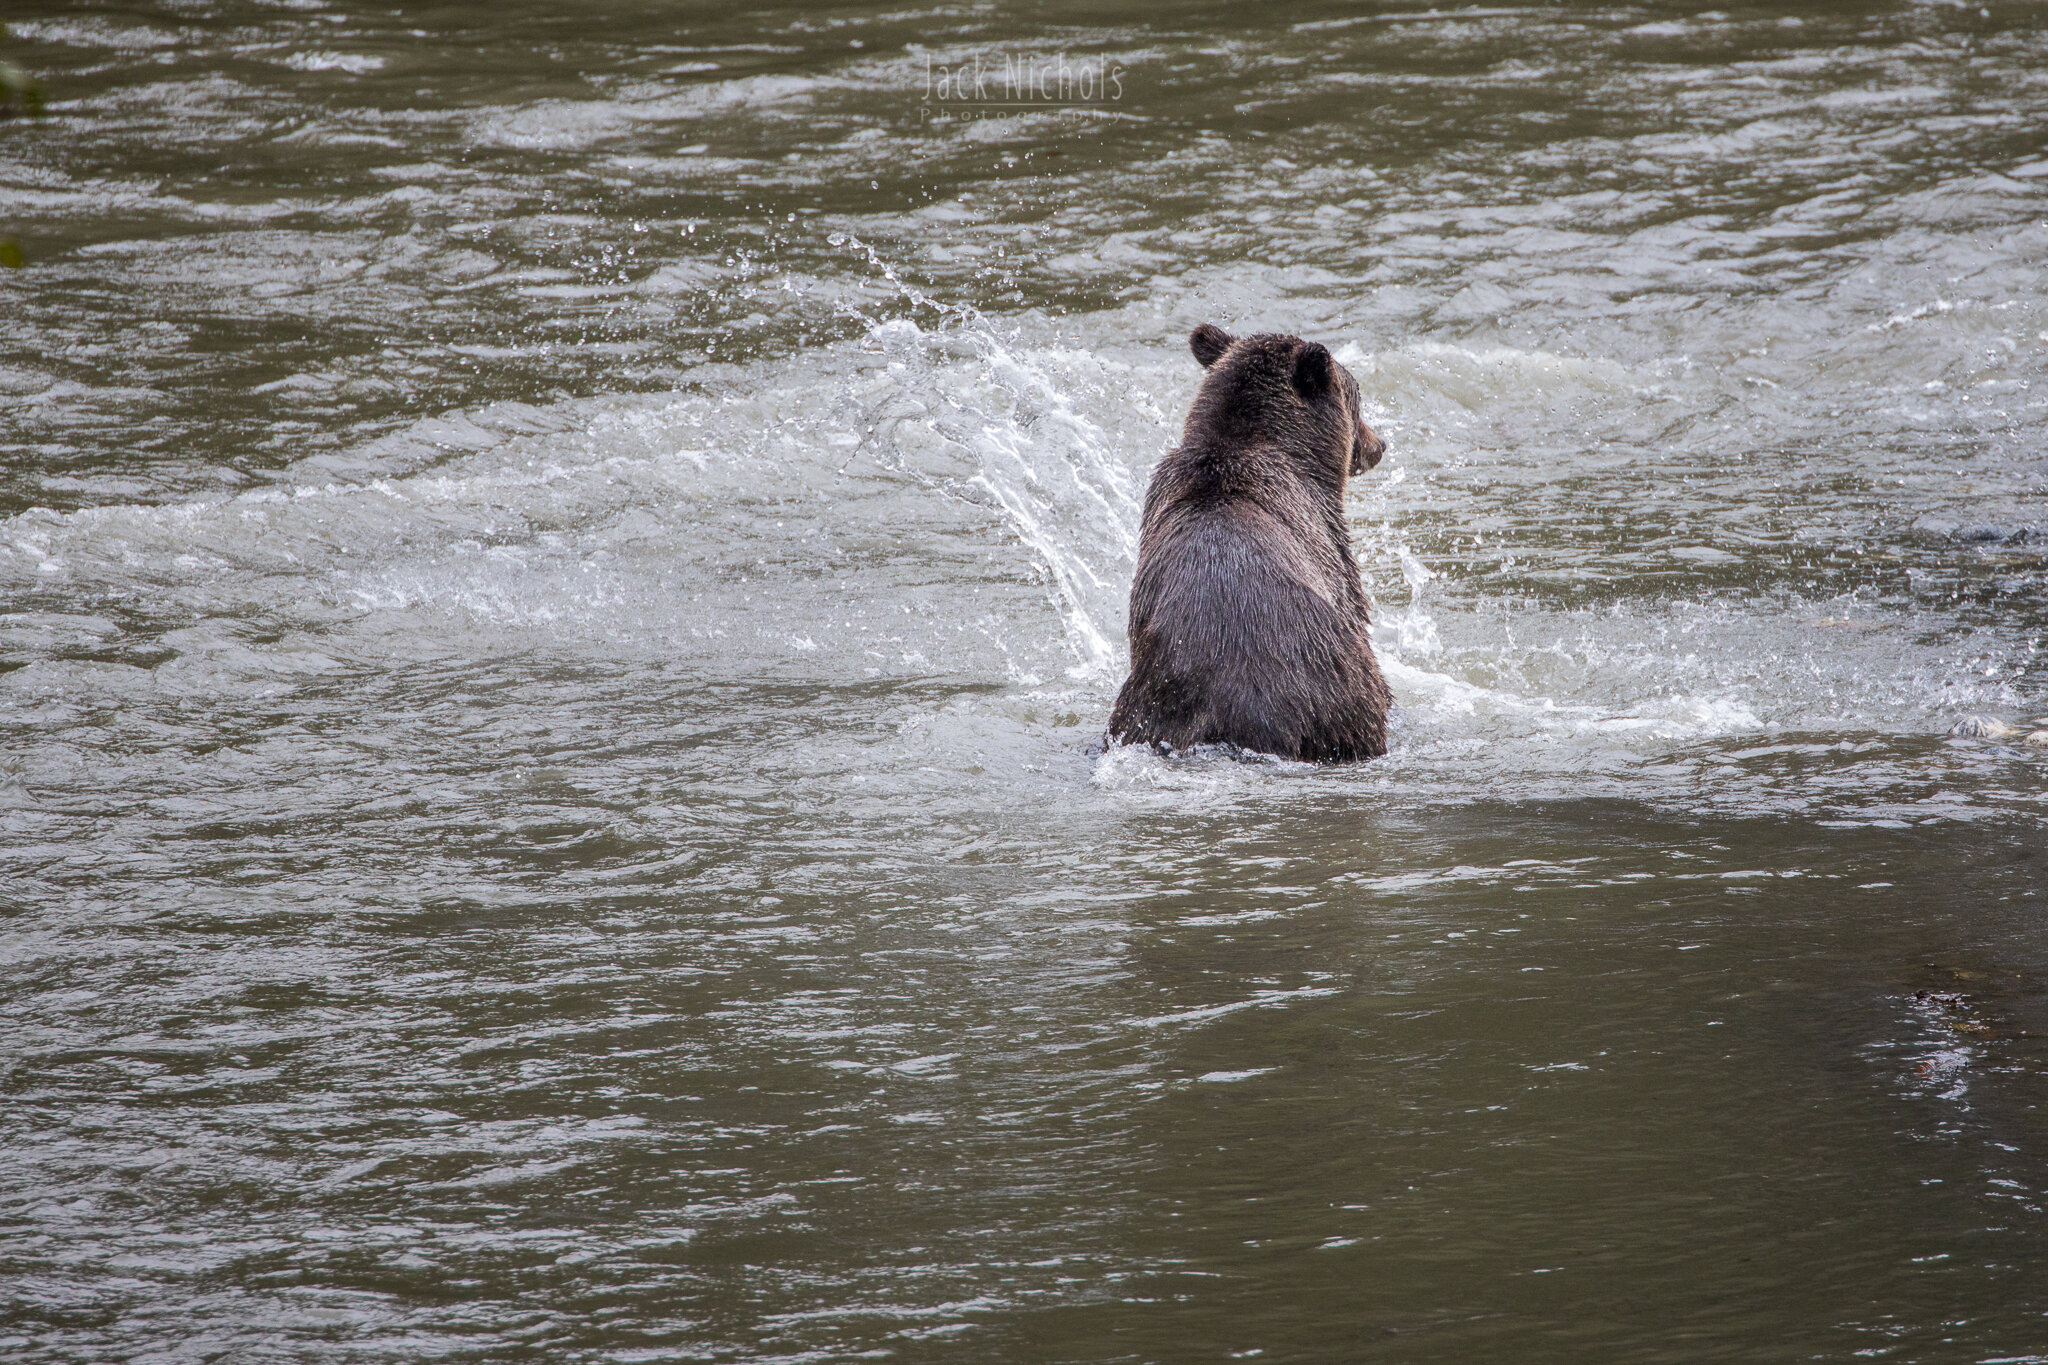 Campbell River, Toba Inlet - Grizzly bear playing in the river, facing away from camera-20190908.jpg